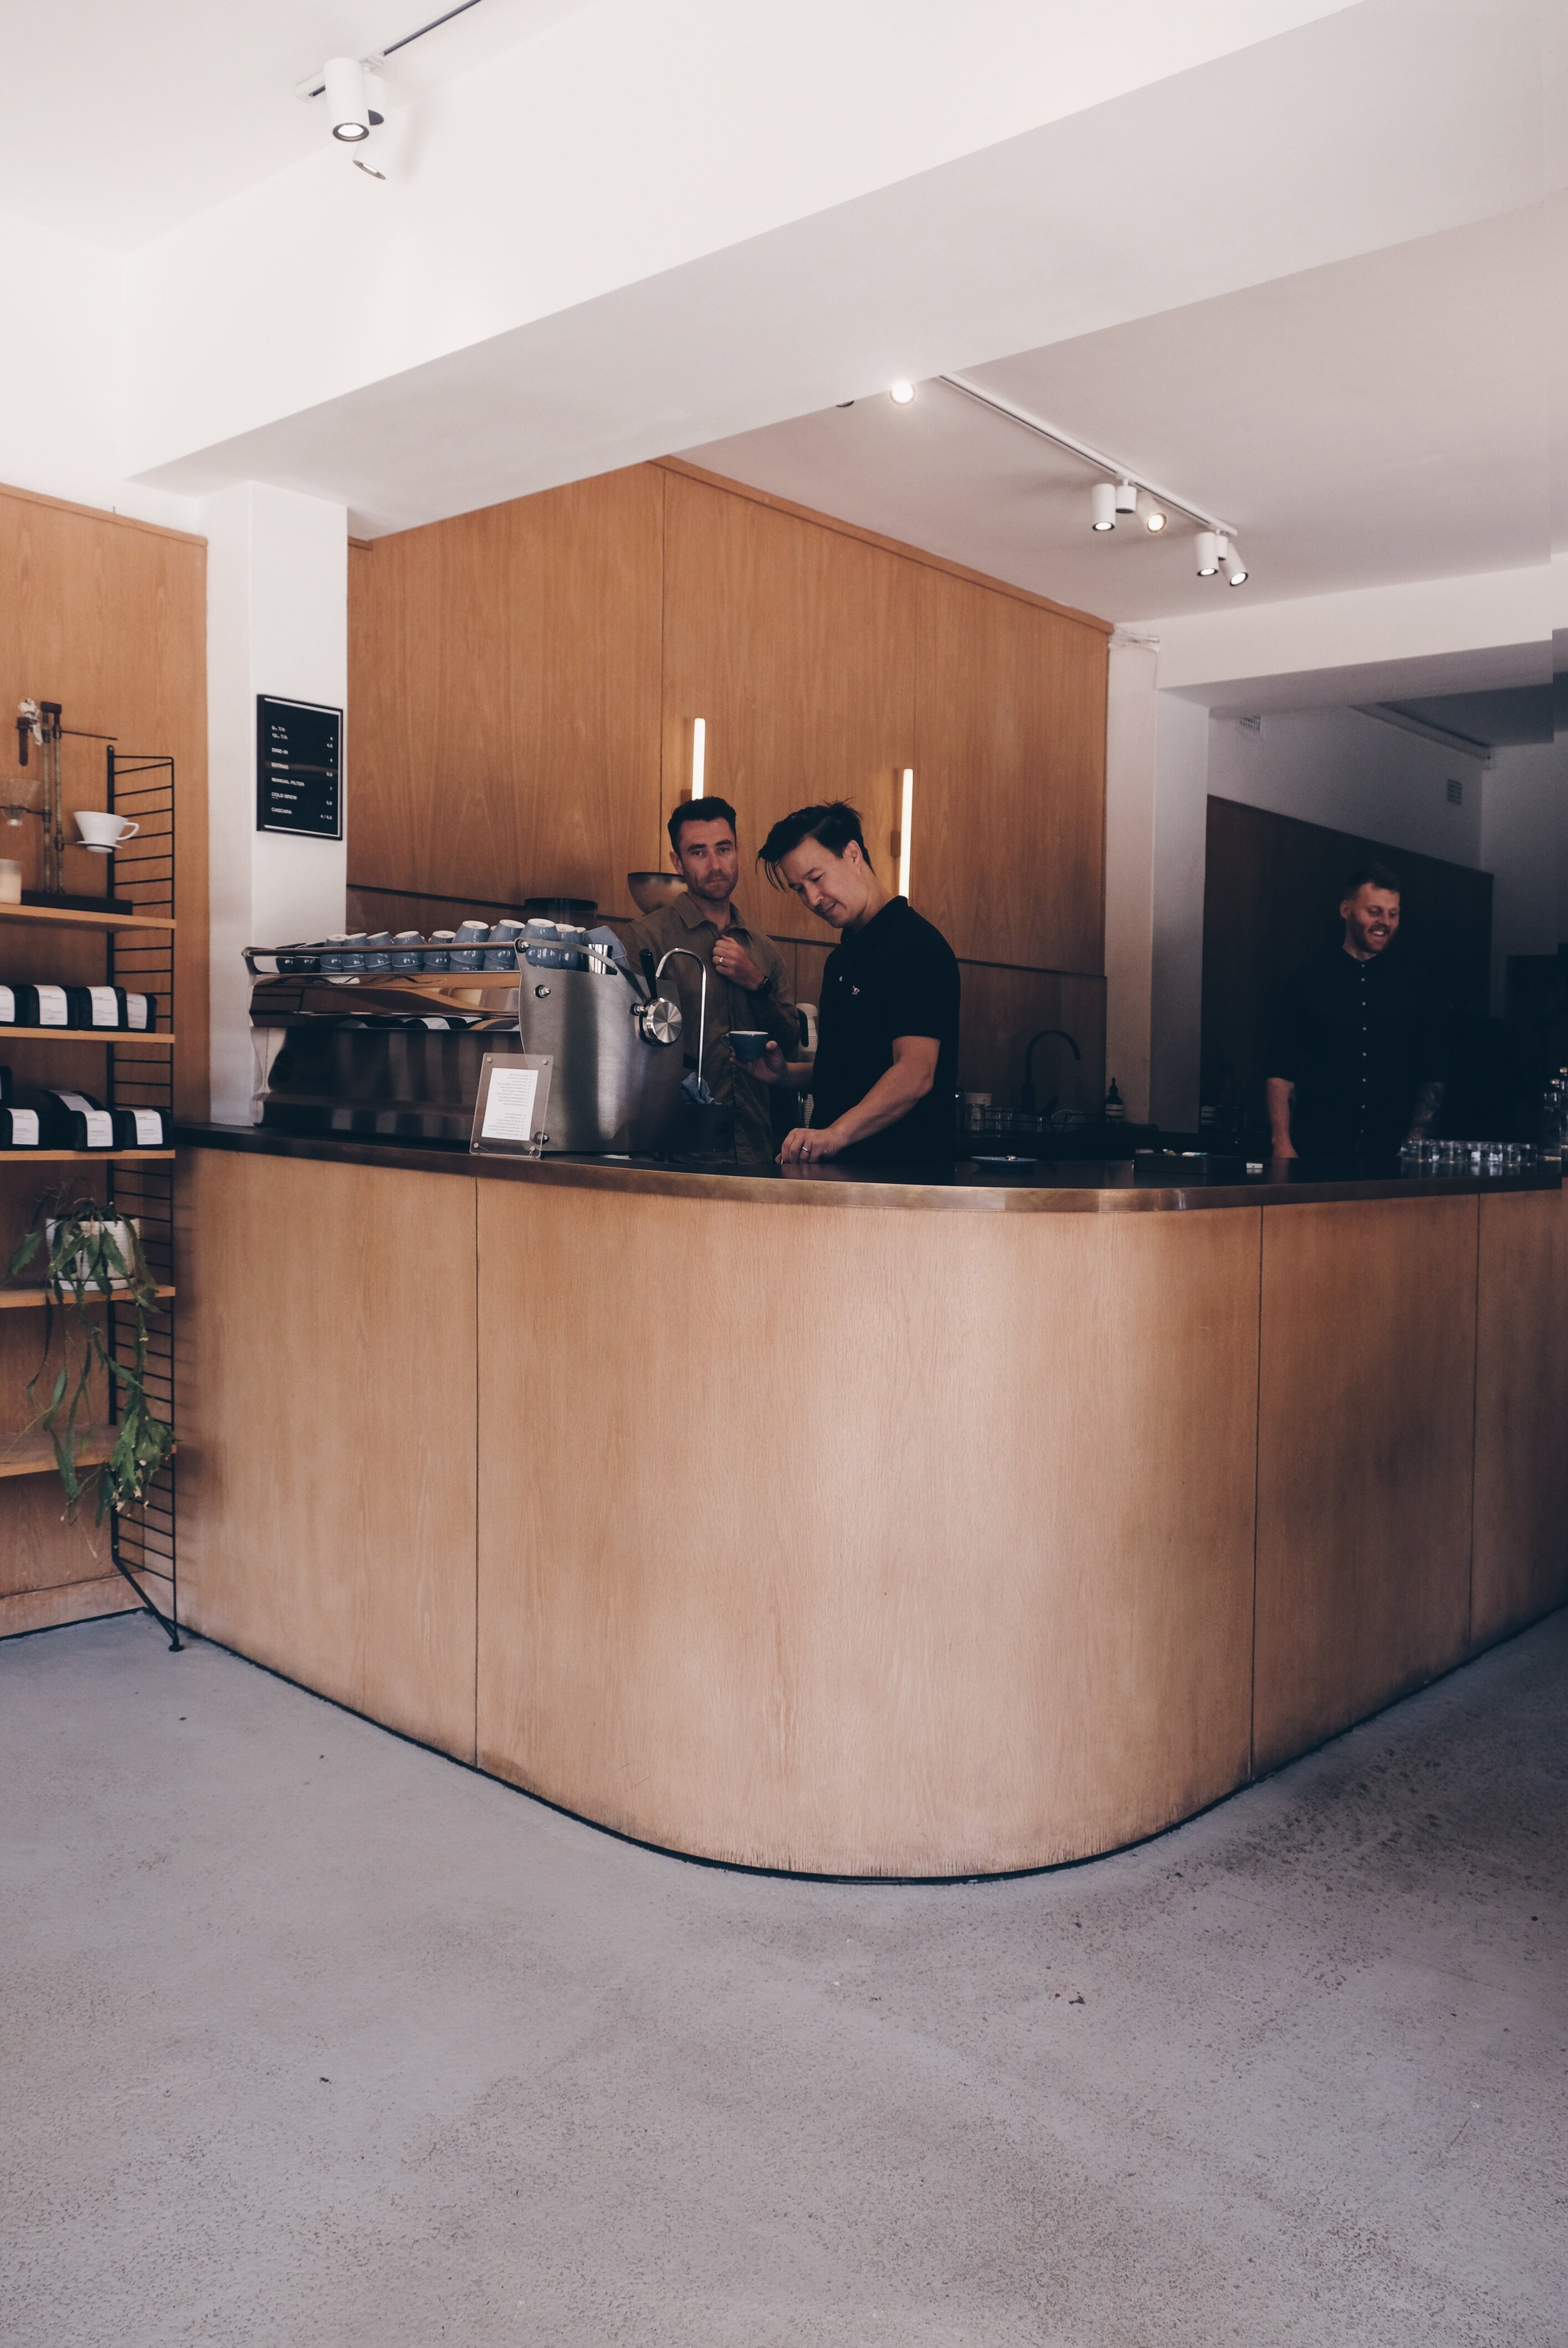 A R T I F I C E R /  Artificer Specialty Coffee Bar & Roastery   繼續在S u r r y h i l l s 的小區喝咖啡 轉角的Artificer 星期日的早上仍然繁忙 叫了冰拿鐵後才看到menu上有cascara這項飲品 (是咖啡核的外皮) 可能要找個時間二訪了! . A very cute cafe located at the corner of Surry Hills. Ordered the iced latte under the heat of 30 degree and only afterwards I realised there is a really interesting drink called cascara! Maybe I should find another time for revisit and try that one! https://www.instagram.com/p/BsATh2VFkci/?utm_source=ig_web_button_share_sheet  📍 547 Bourke St.  Surry Hills . Sydney